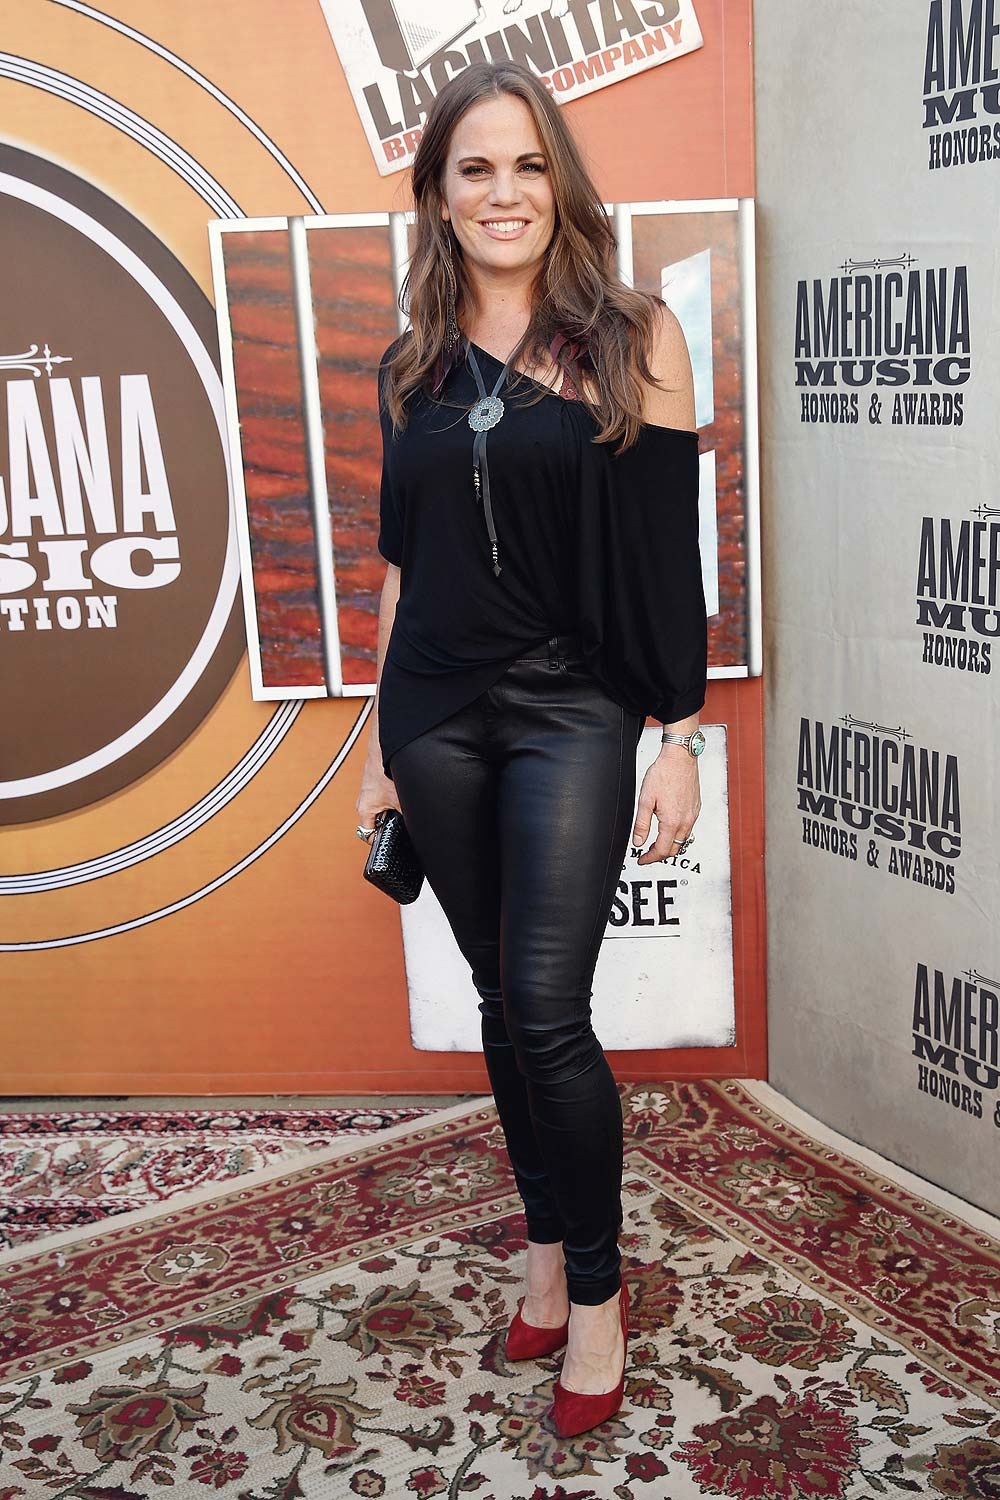 Bonnie Bishop attends the Americana Honors & Awards